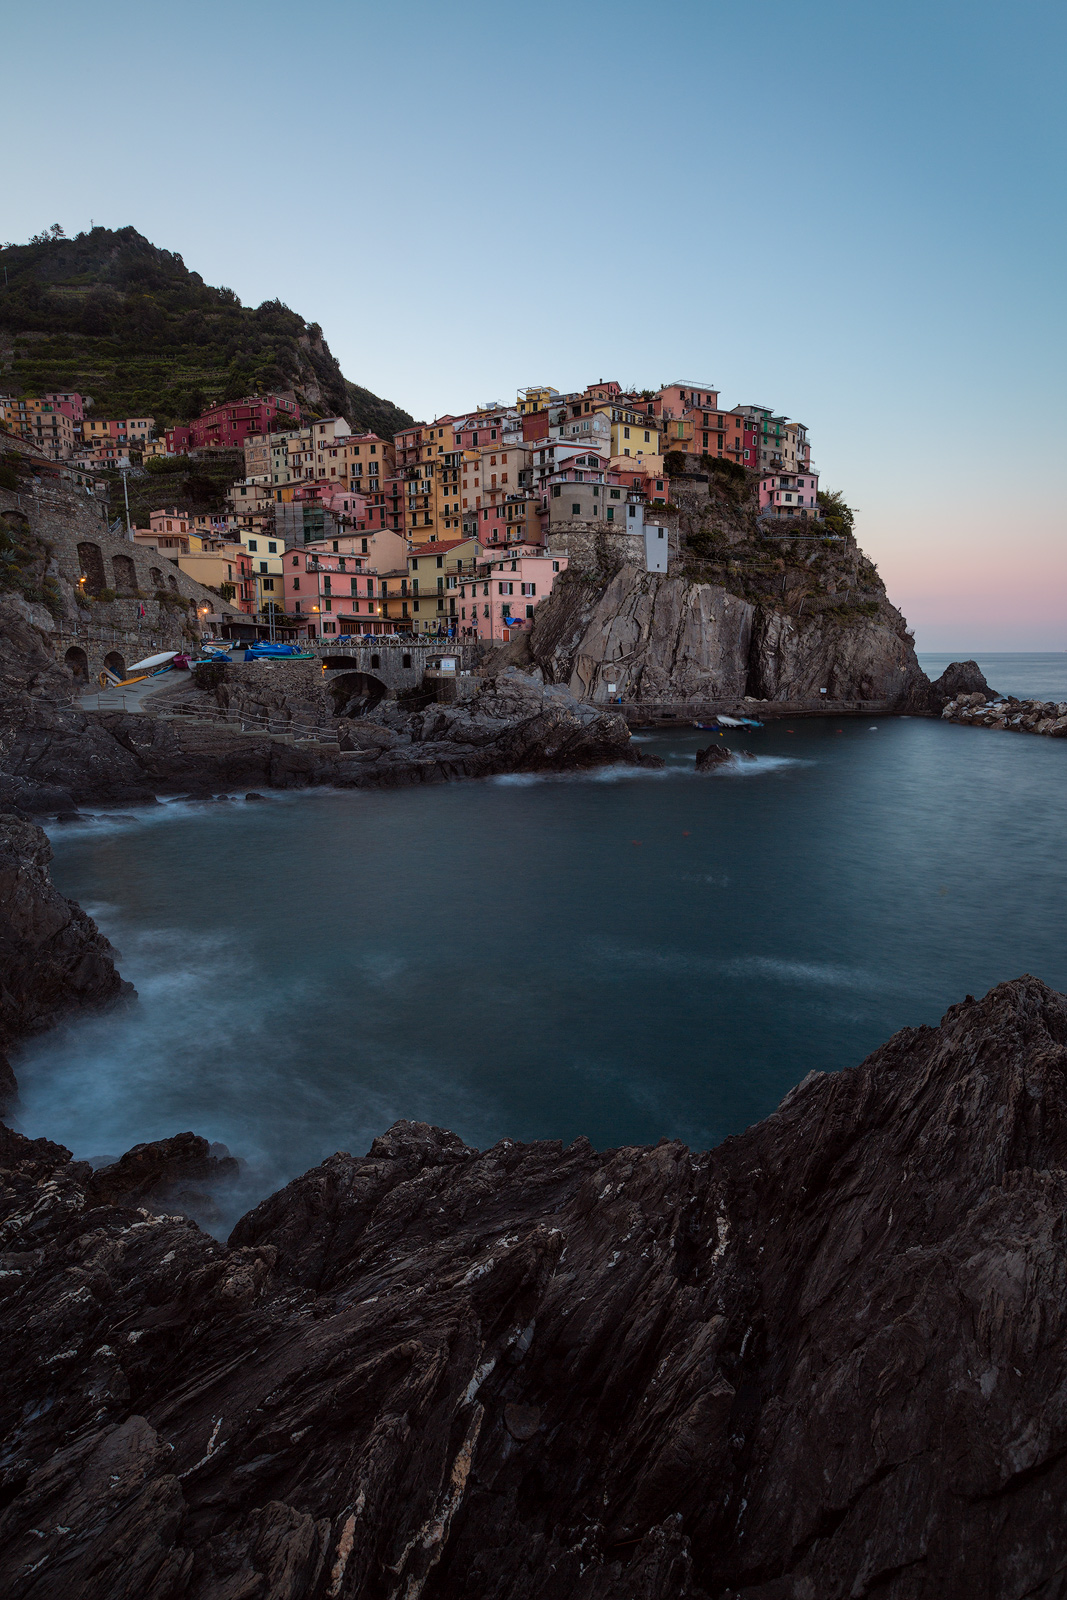 2016,May,Spring,cinque terre,europe,italy,liguria,long exposure,manarola,morning,portrait,sunrise,vertical, photo